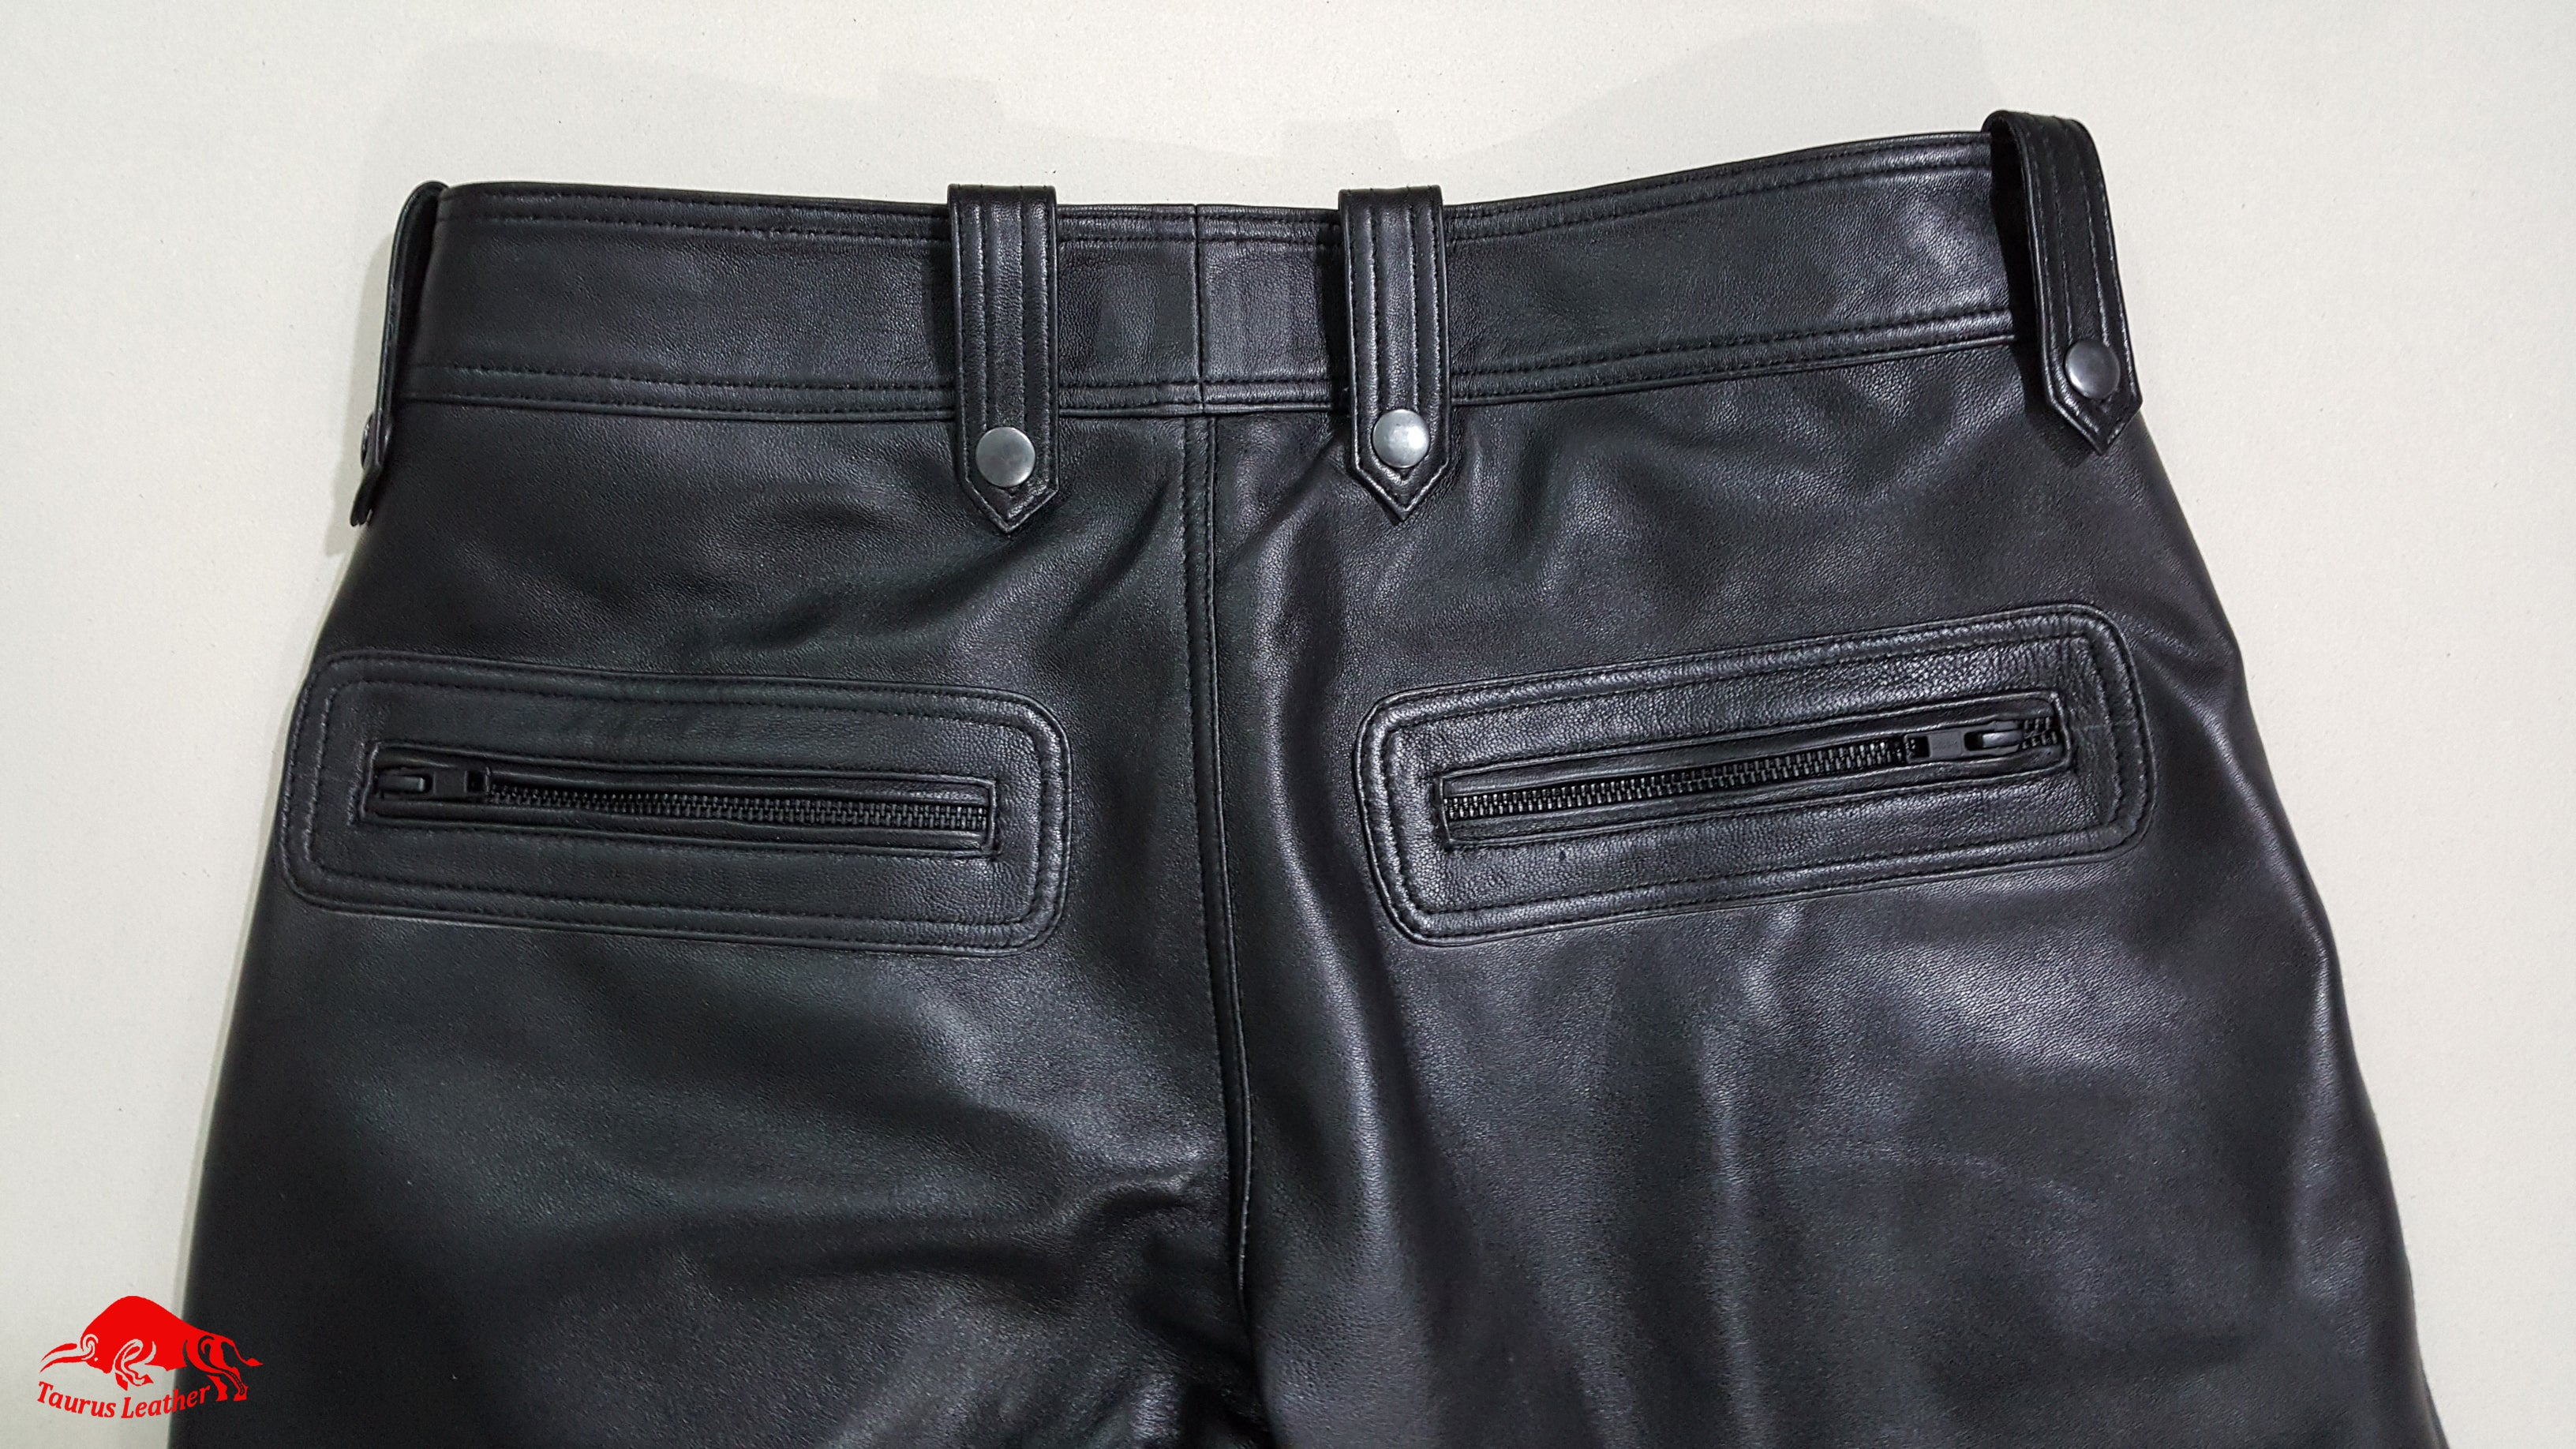 TAURUS LEATHER Sheep Leather Biker Style Pant